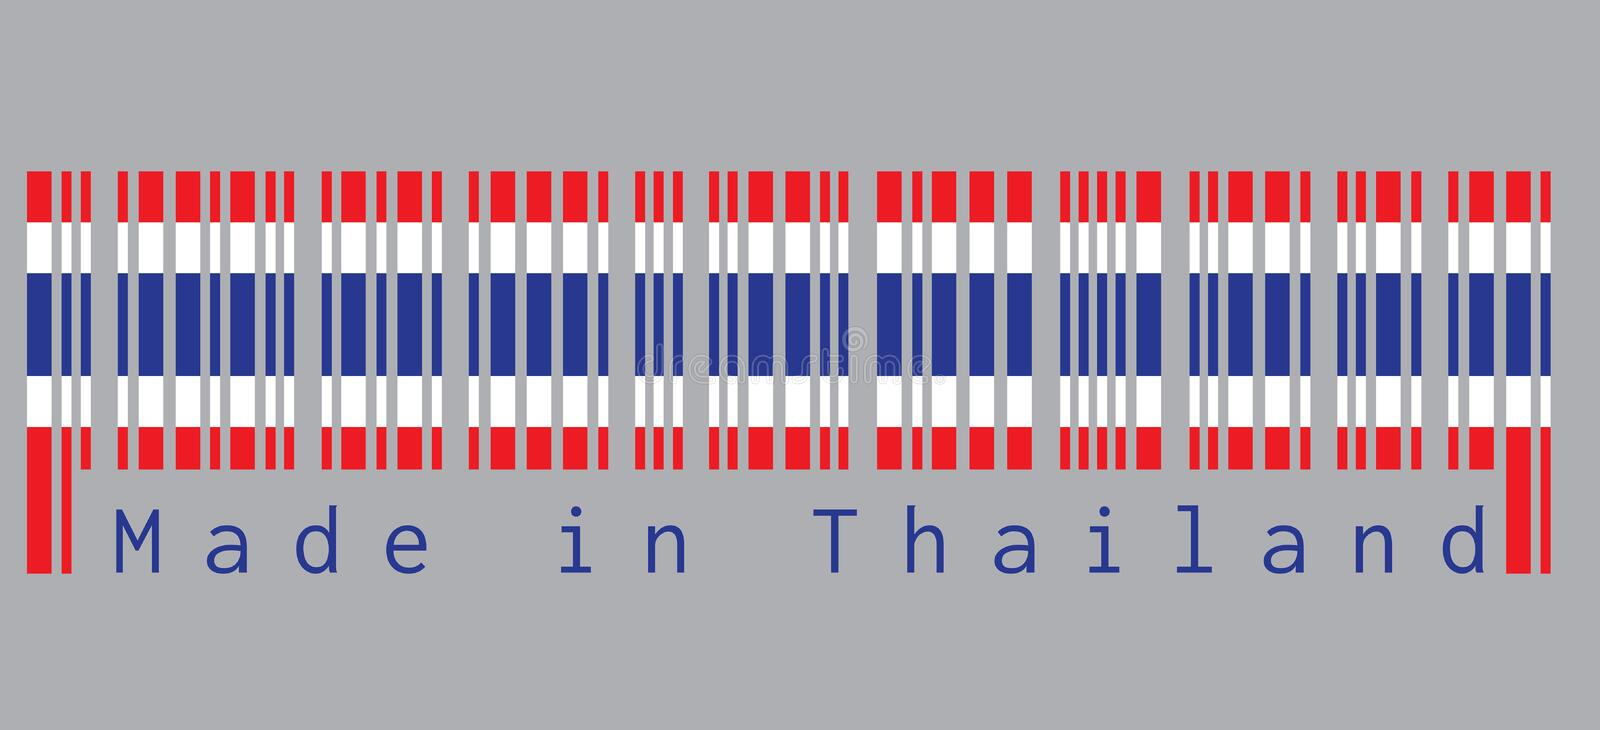 Barcode set the color of Thai flag, blue red and white color in grey background with text: Made in Thailand. Concept of sale or business stock illustration